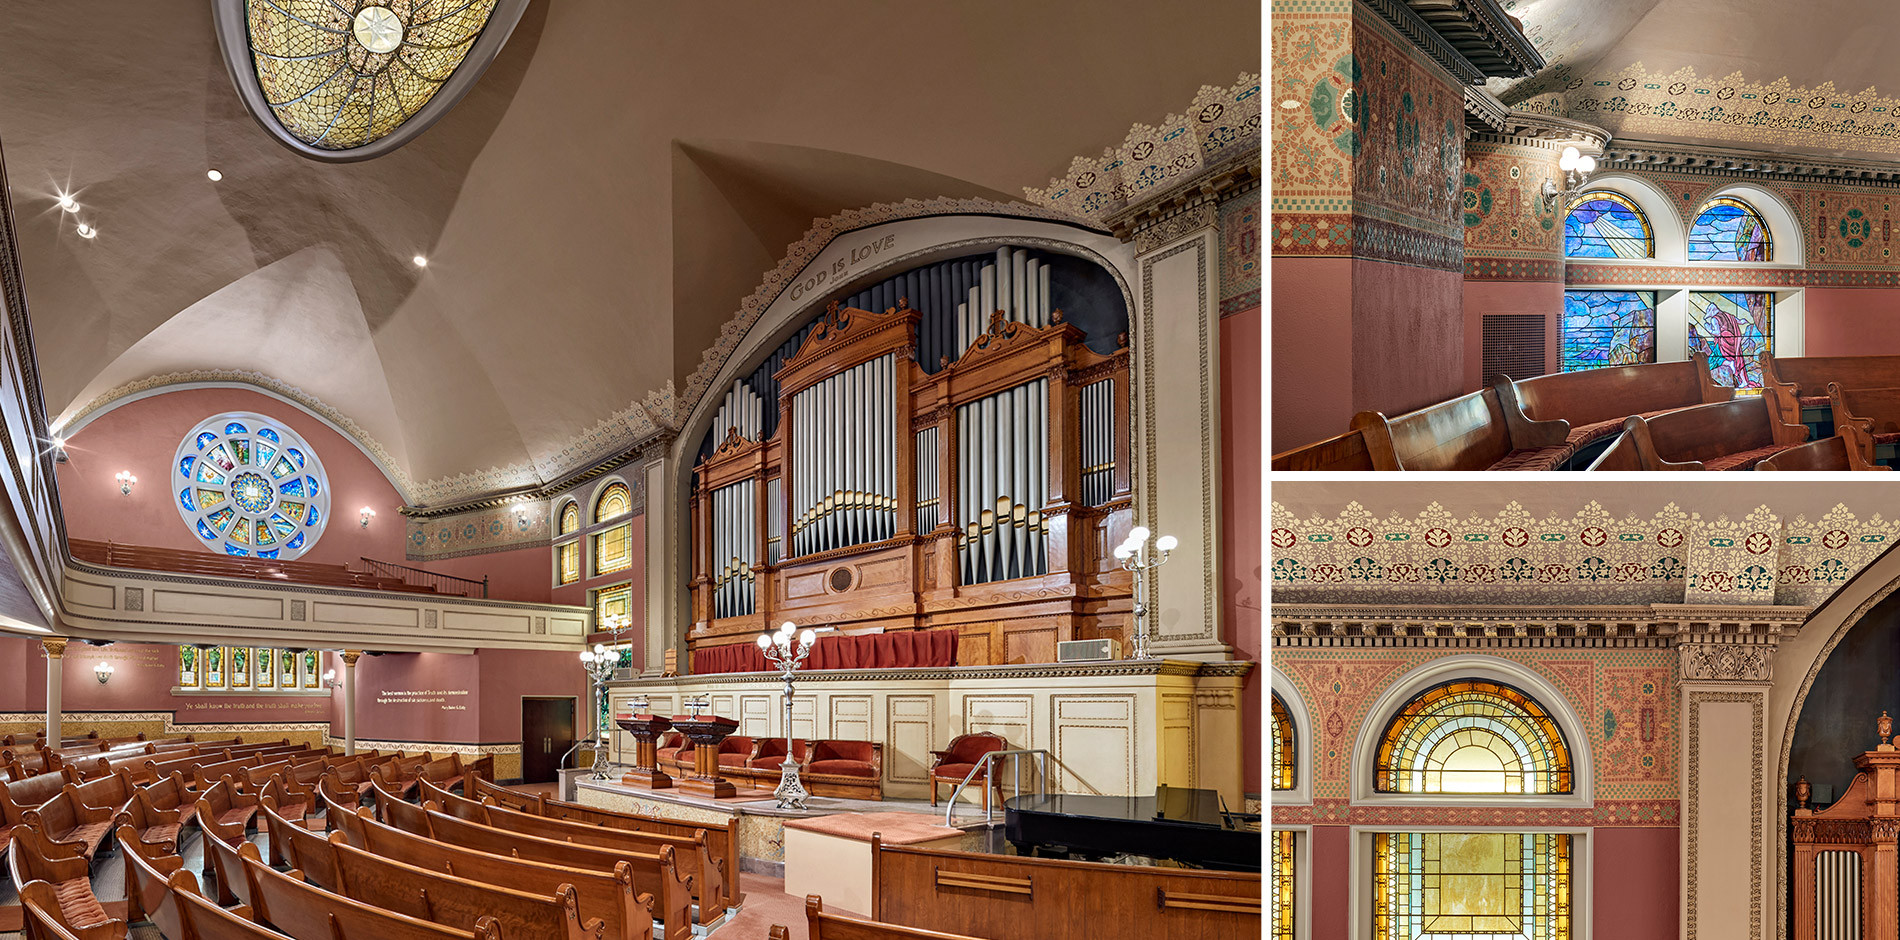 The First Church of Christ, Scientist in Boston Restored